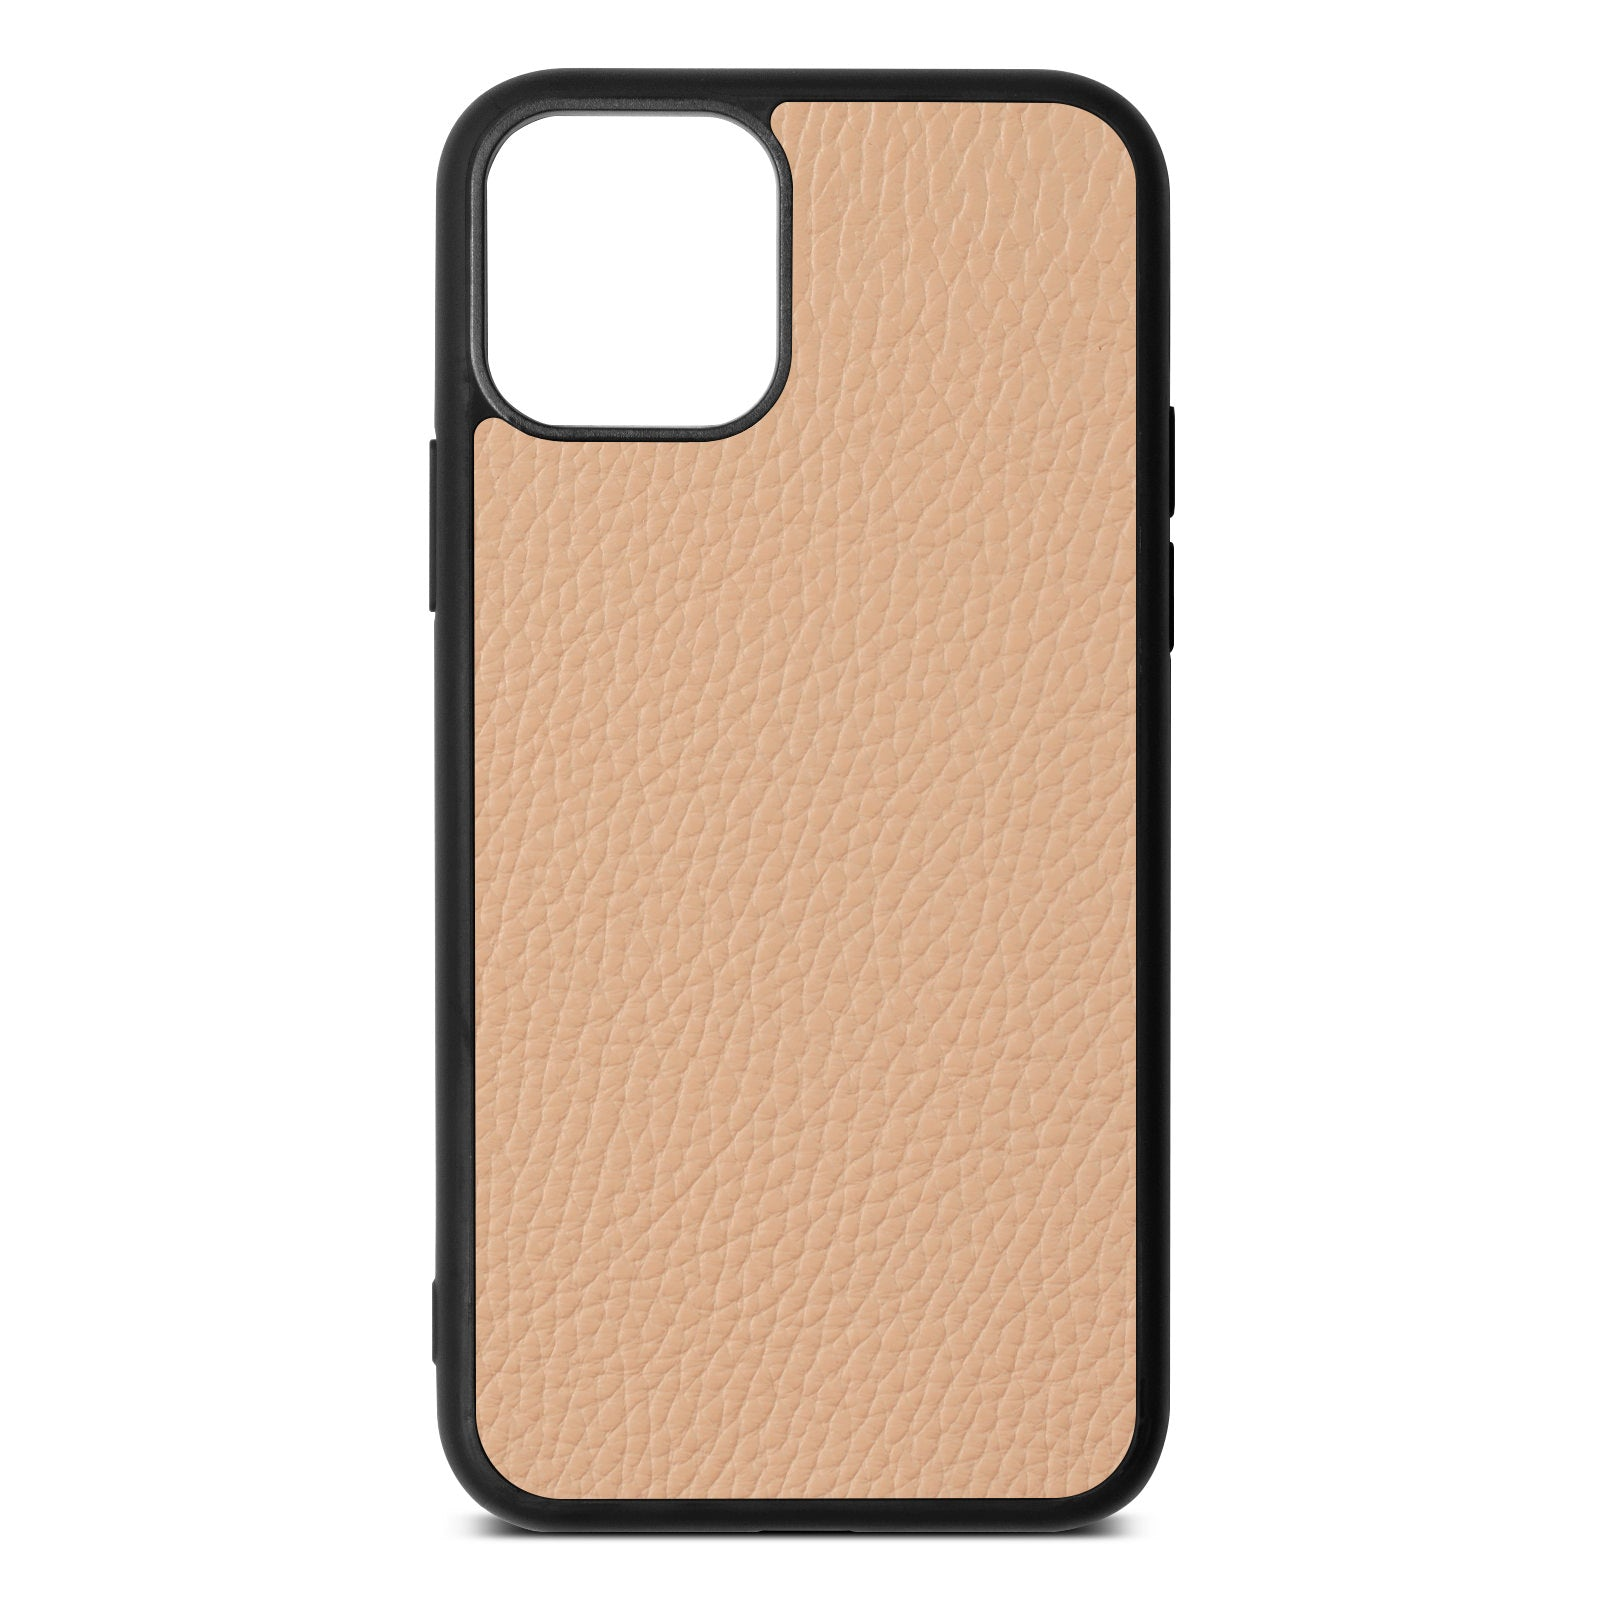 Blank iPhone 11 Nude Pebble Leather Case